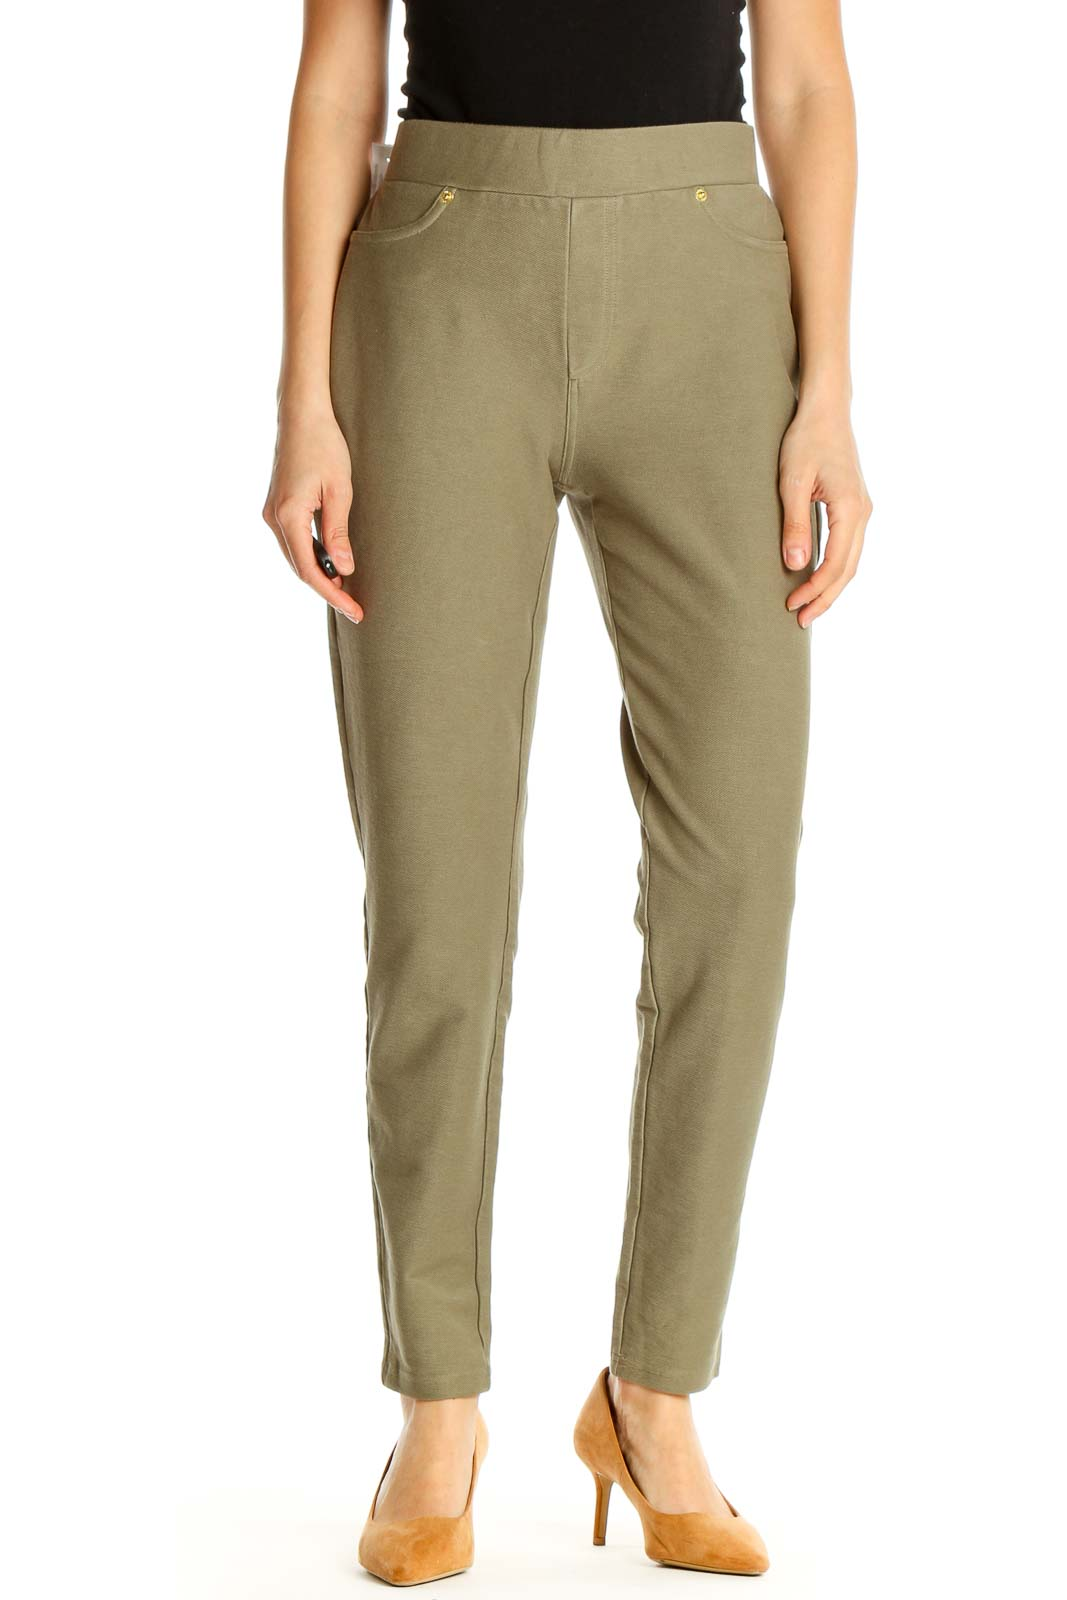 Green All Day Wear Trousers Front